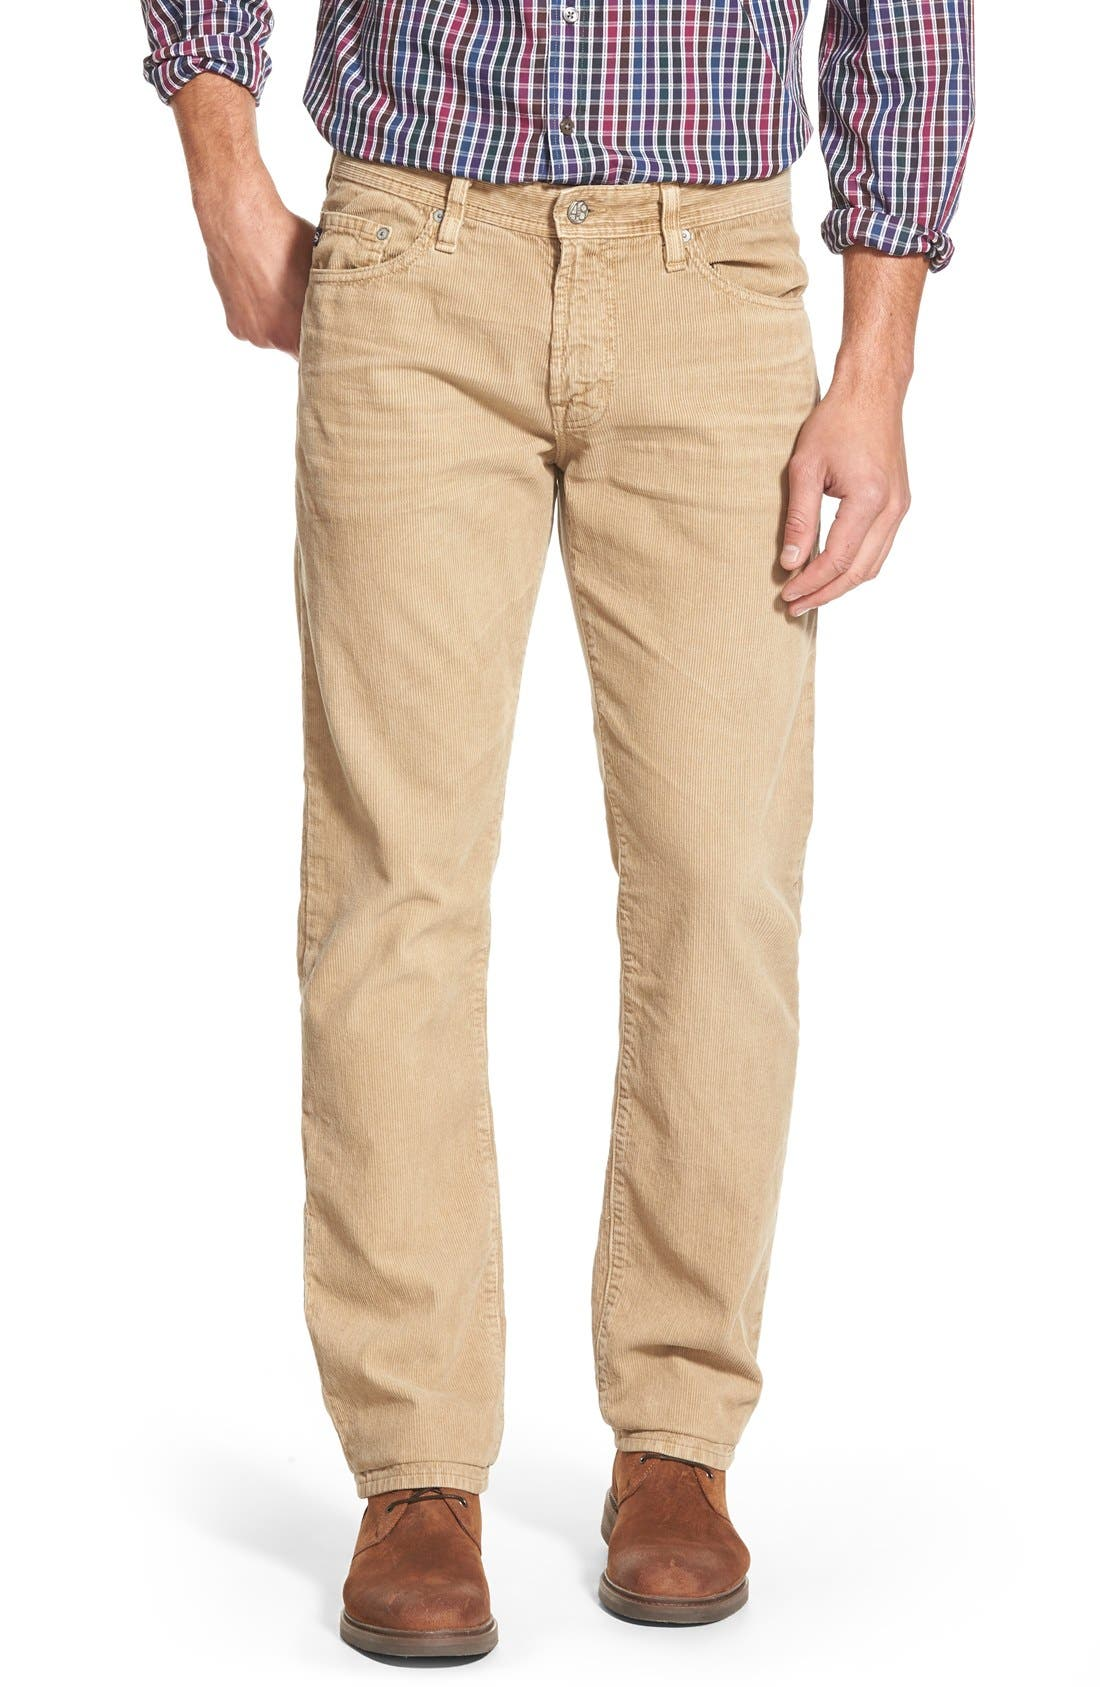 'Graduate' Tailored Straight Leg Corduroy Pants,                             Main thumbnail 9, color,